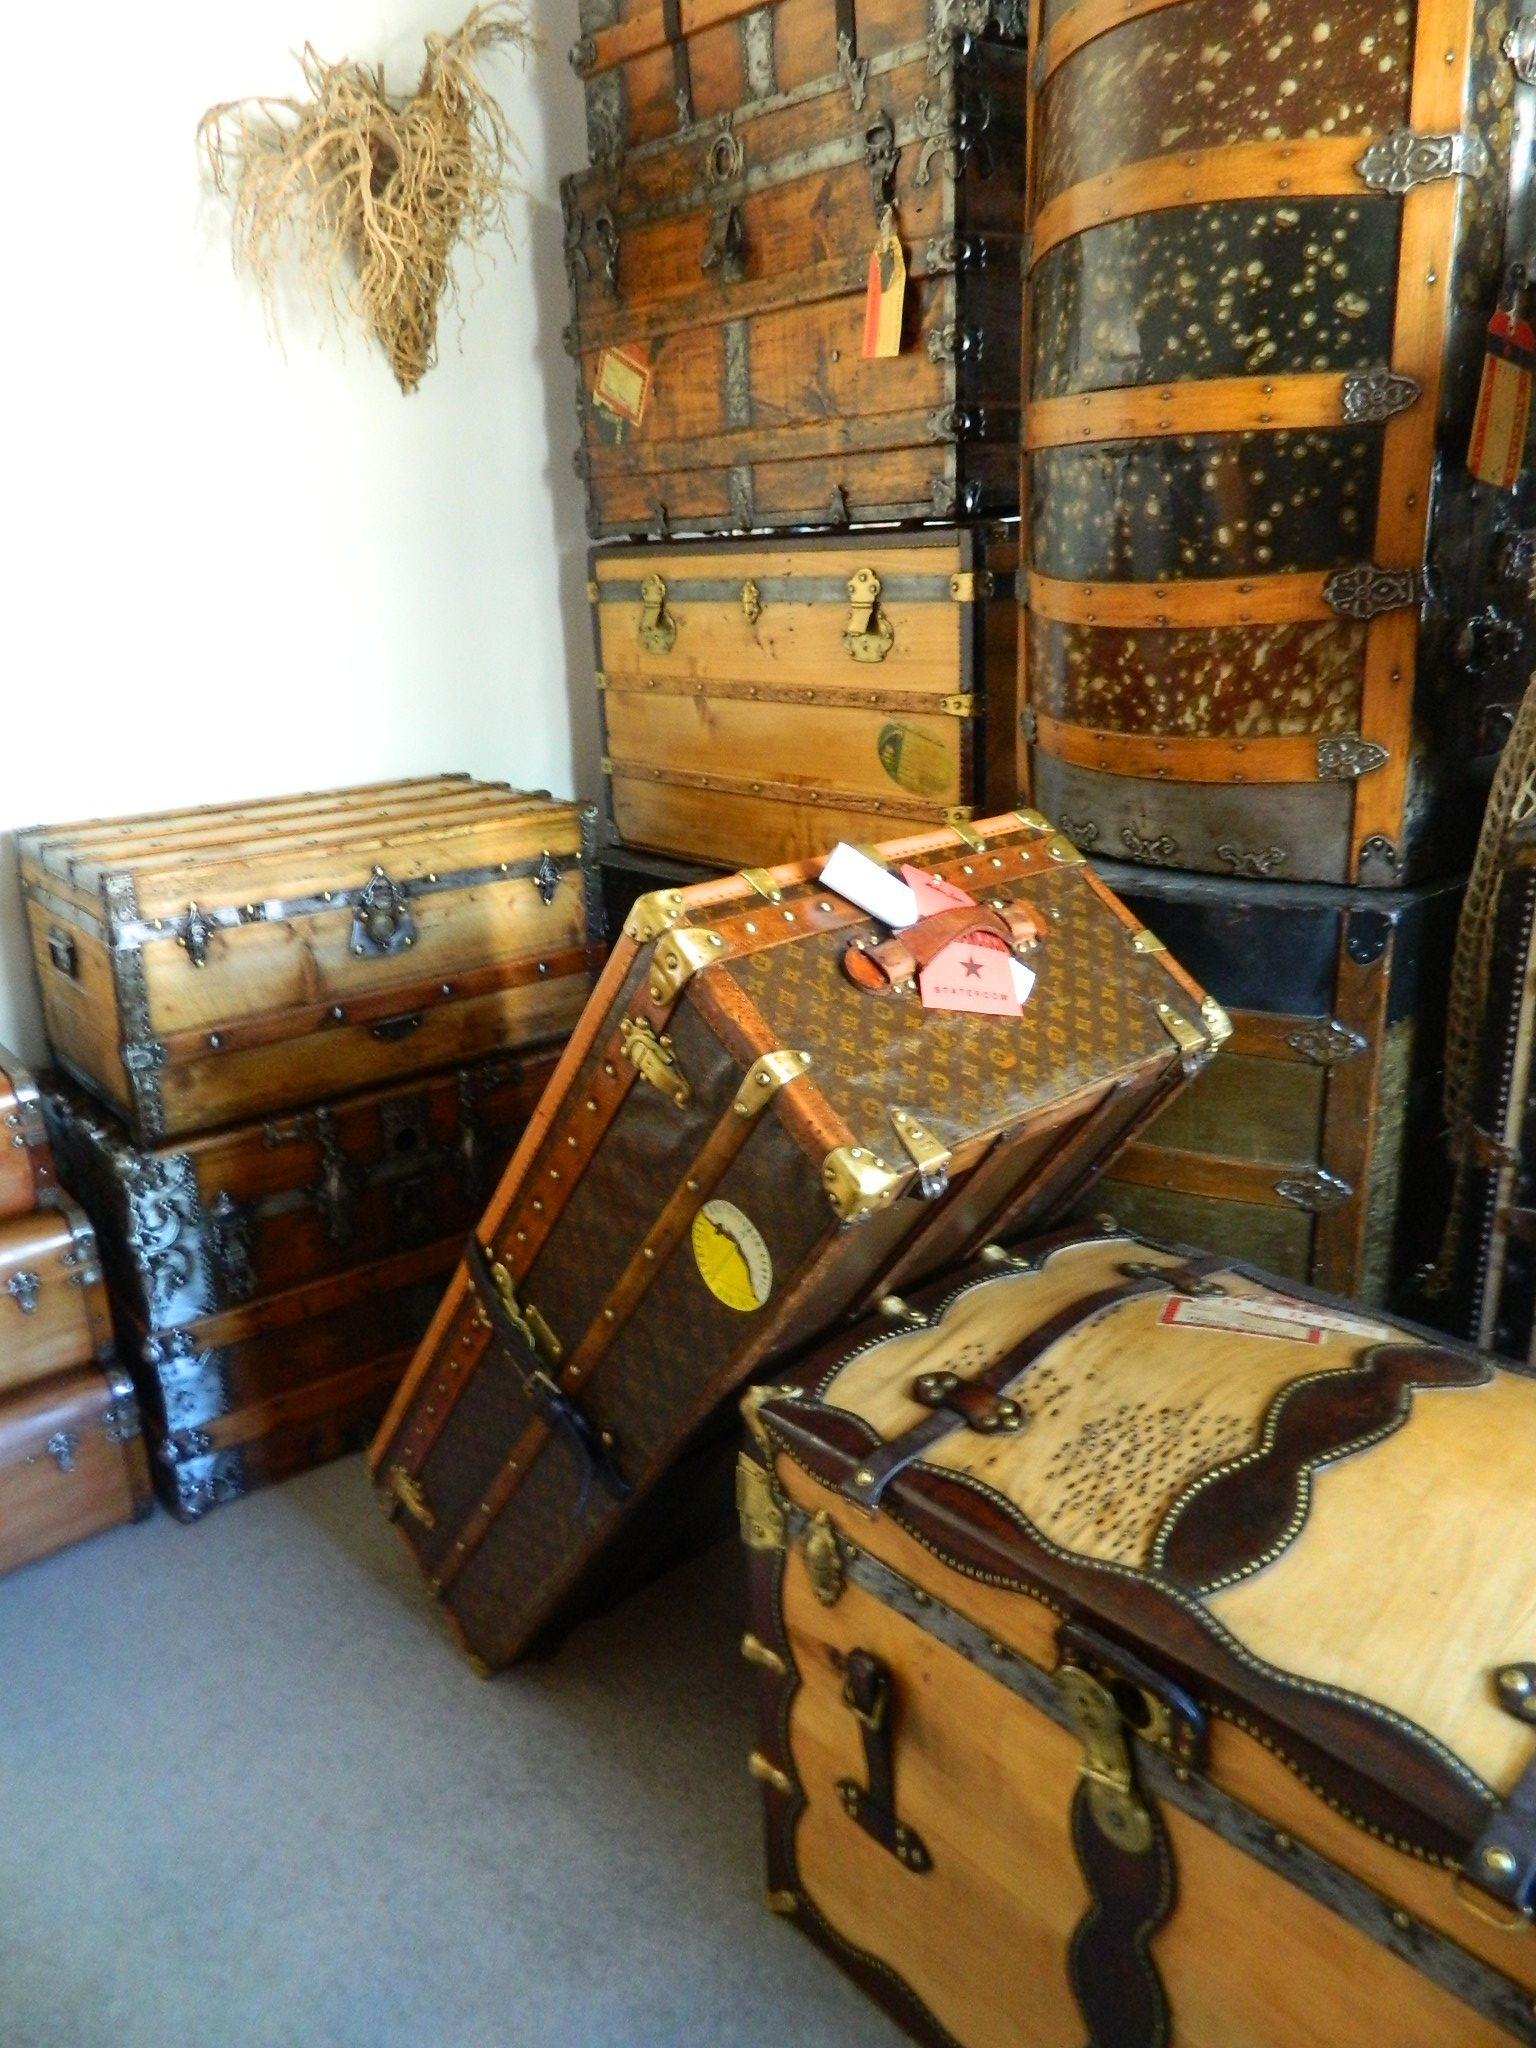 Antique Trunks Restored By Julieanne Hayward Of The Steam Ship Trading Co Auckland New Zealand Antique Trunk Vintage Trunks Trunks